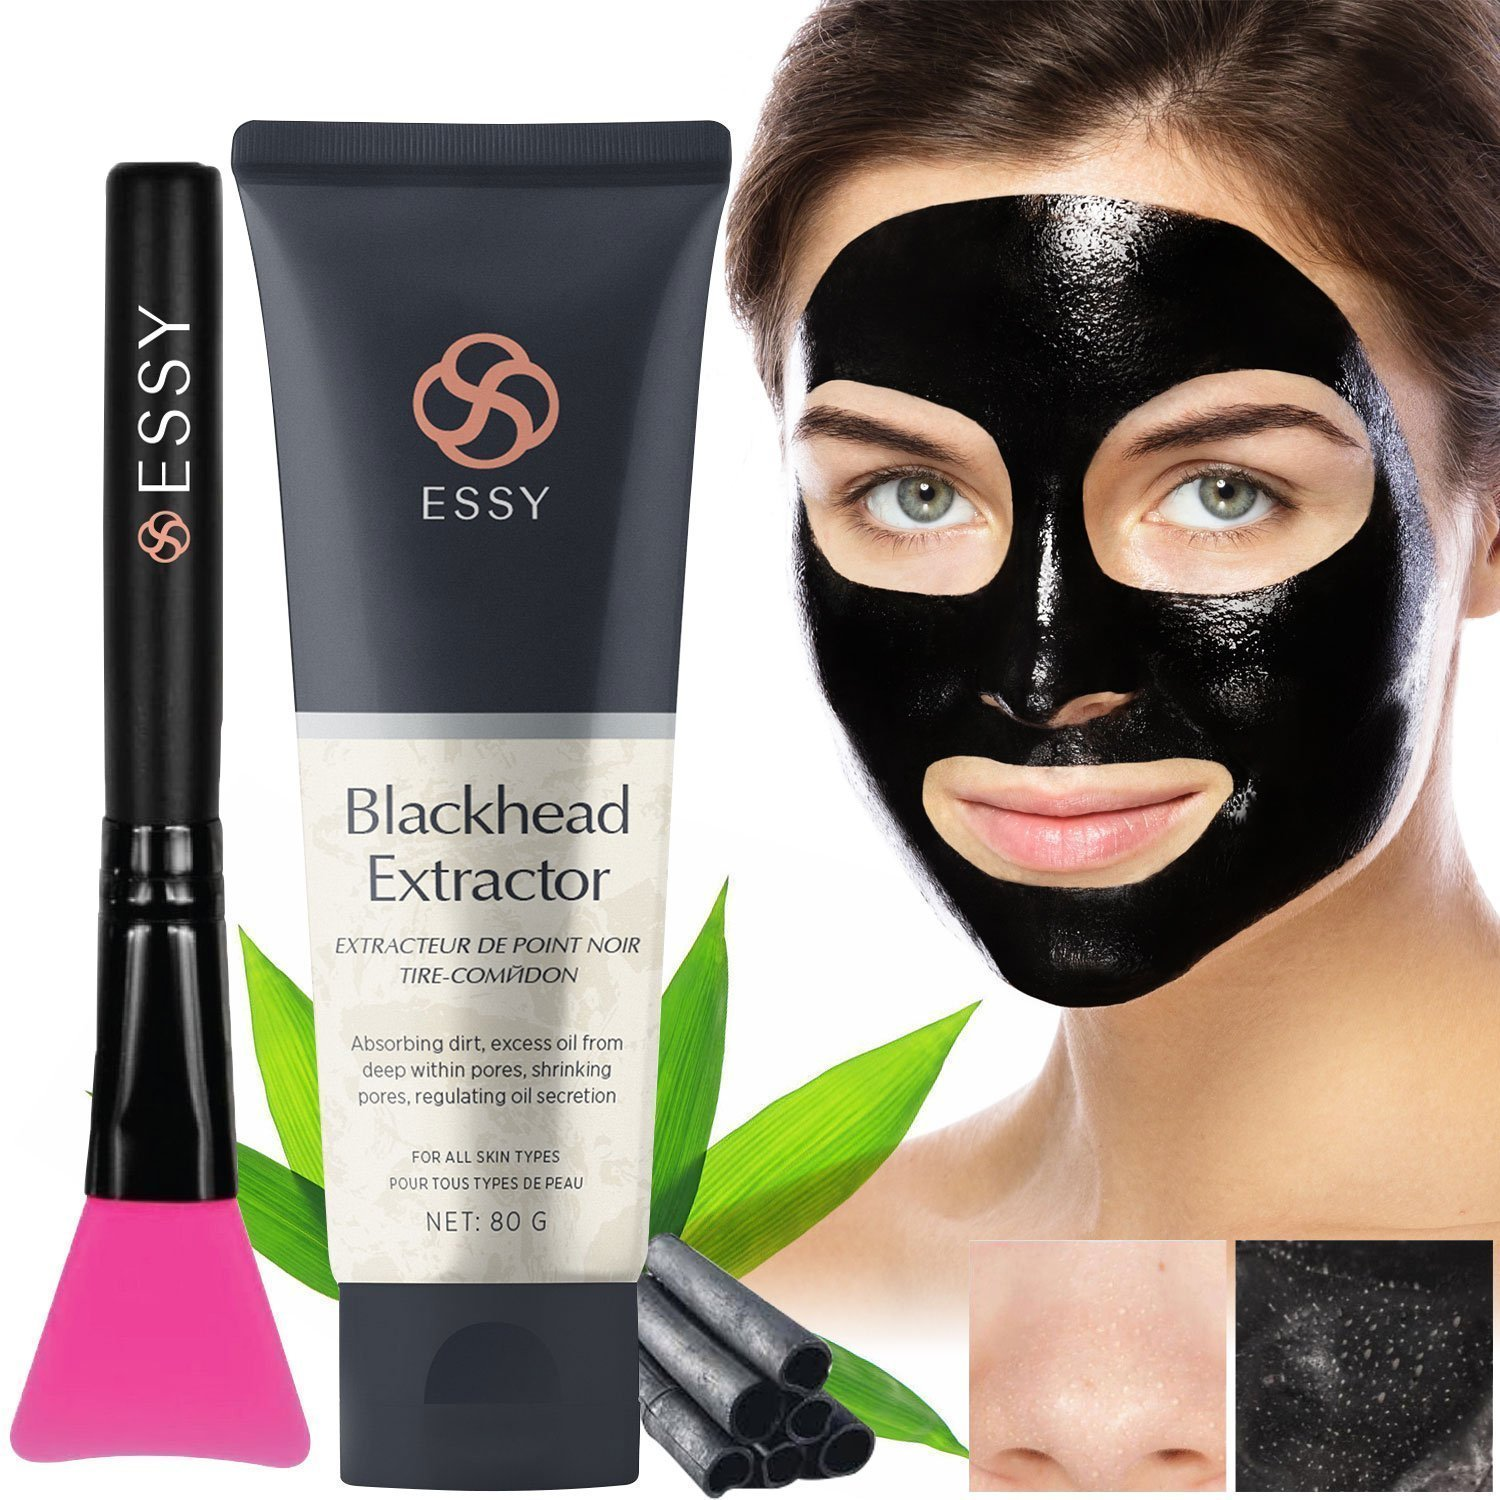 Charcoal peel off mask With Brush- Blackhead Remover, Deep Pore Cleanse for Acne, Oil Control 80g